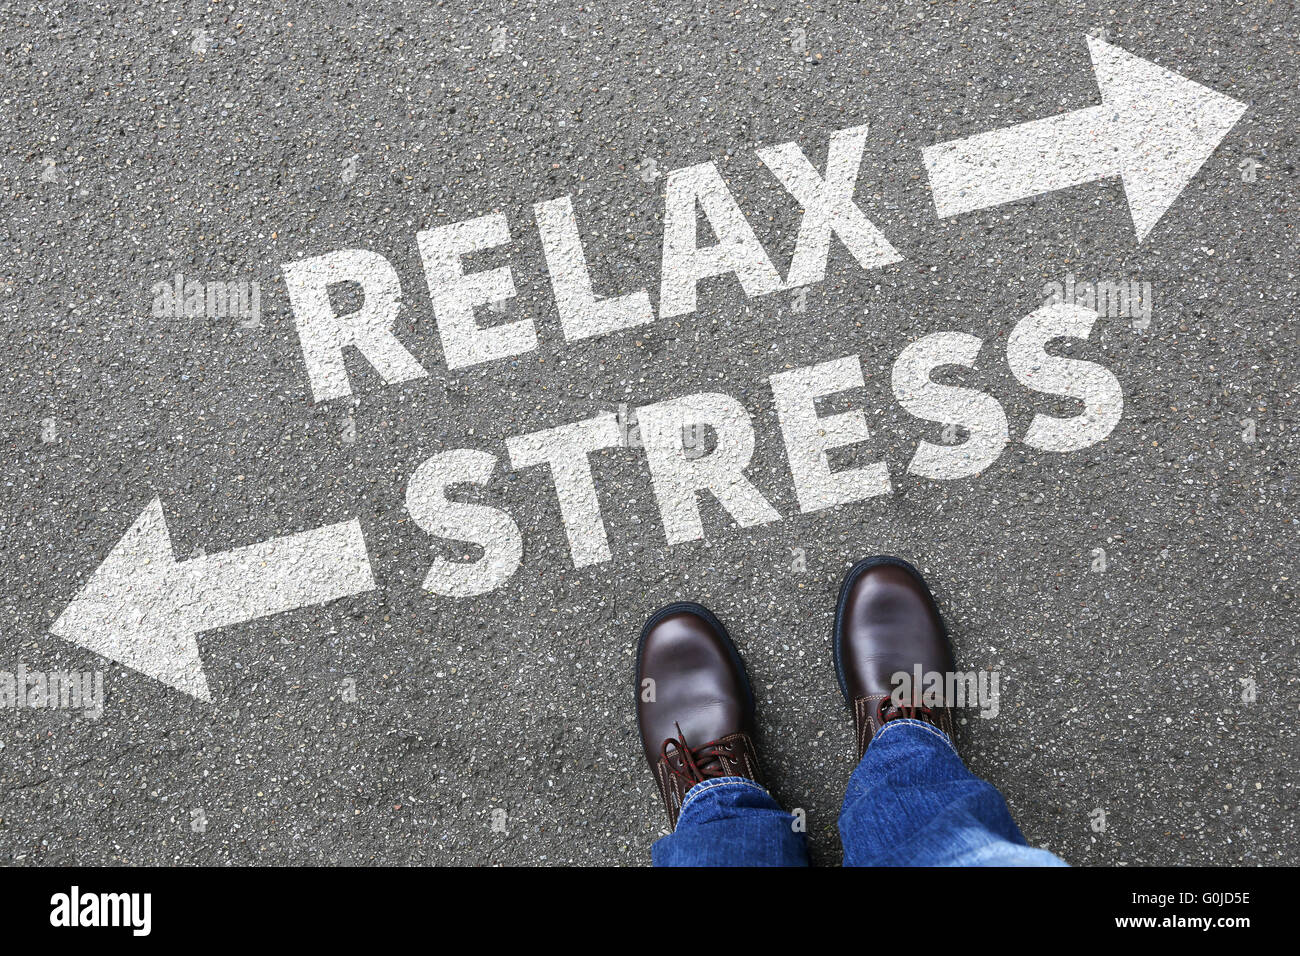 Stress stressed and relax relaxed health businessman business man concept pressure in job - Stock Image